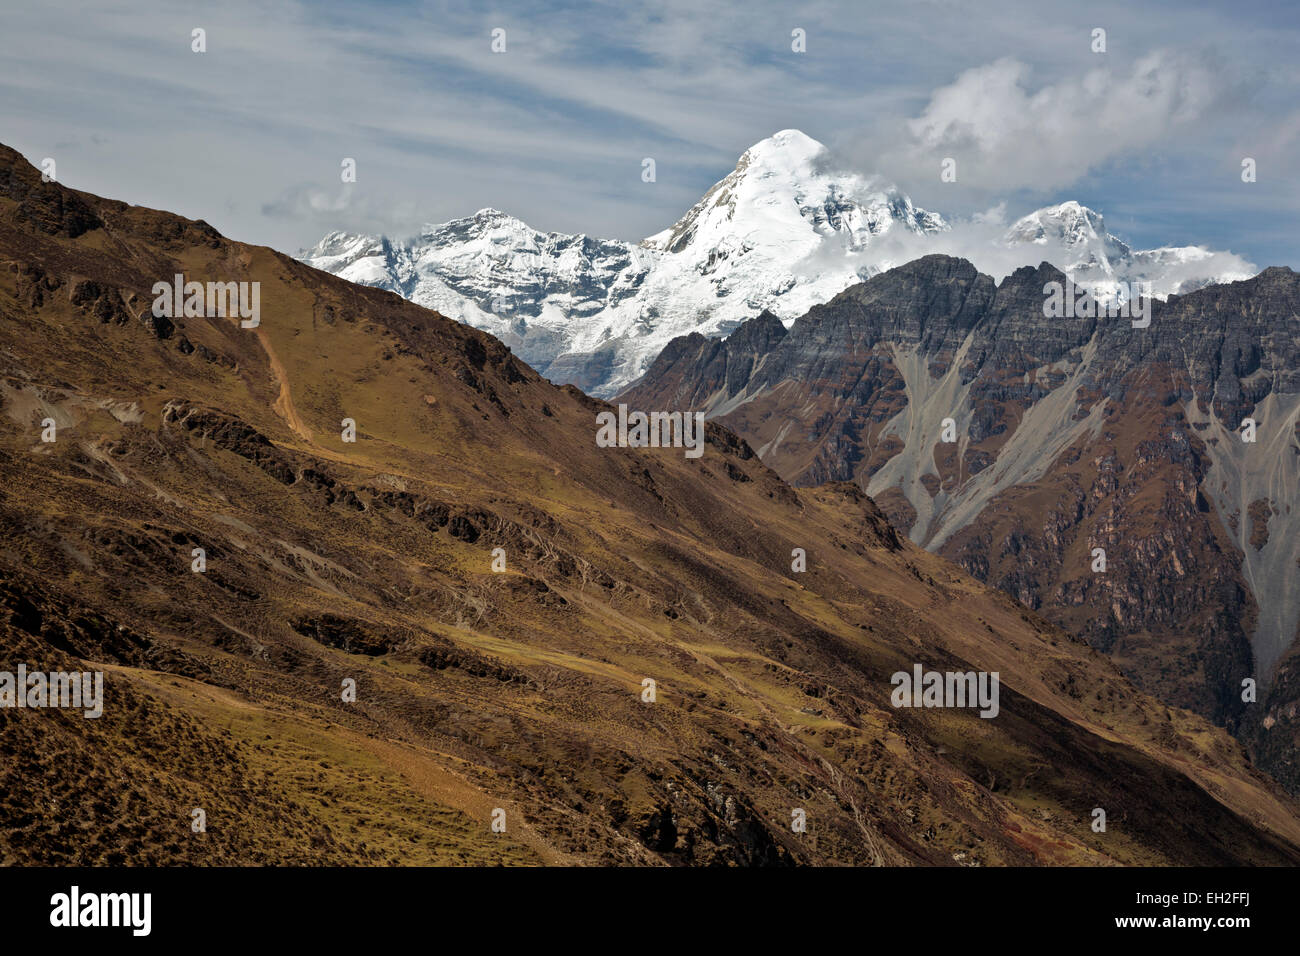 BU00256-00...BHUTAN - View of Jhomolhari and Jhomolhari 2 from the summit of Takhung La (4520 m or 14,829 feet). - Stock Image